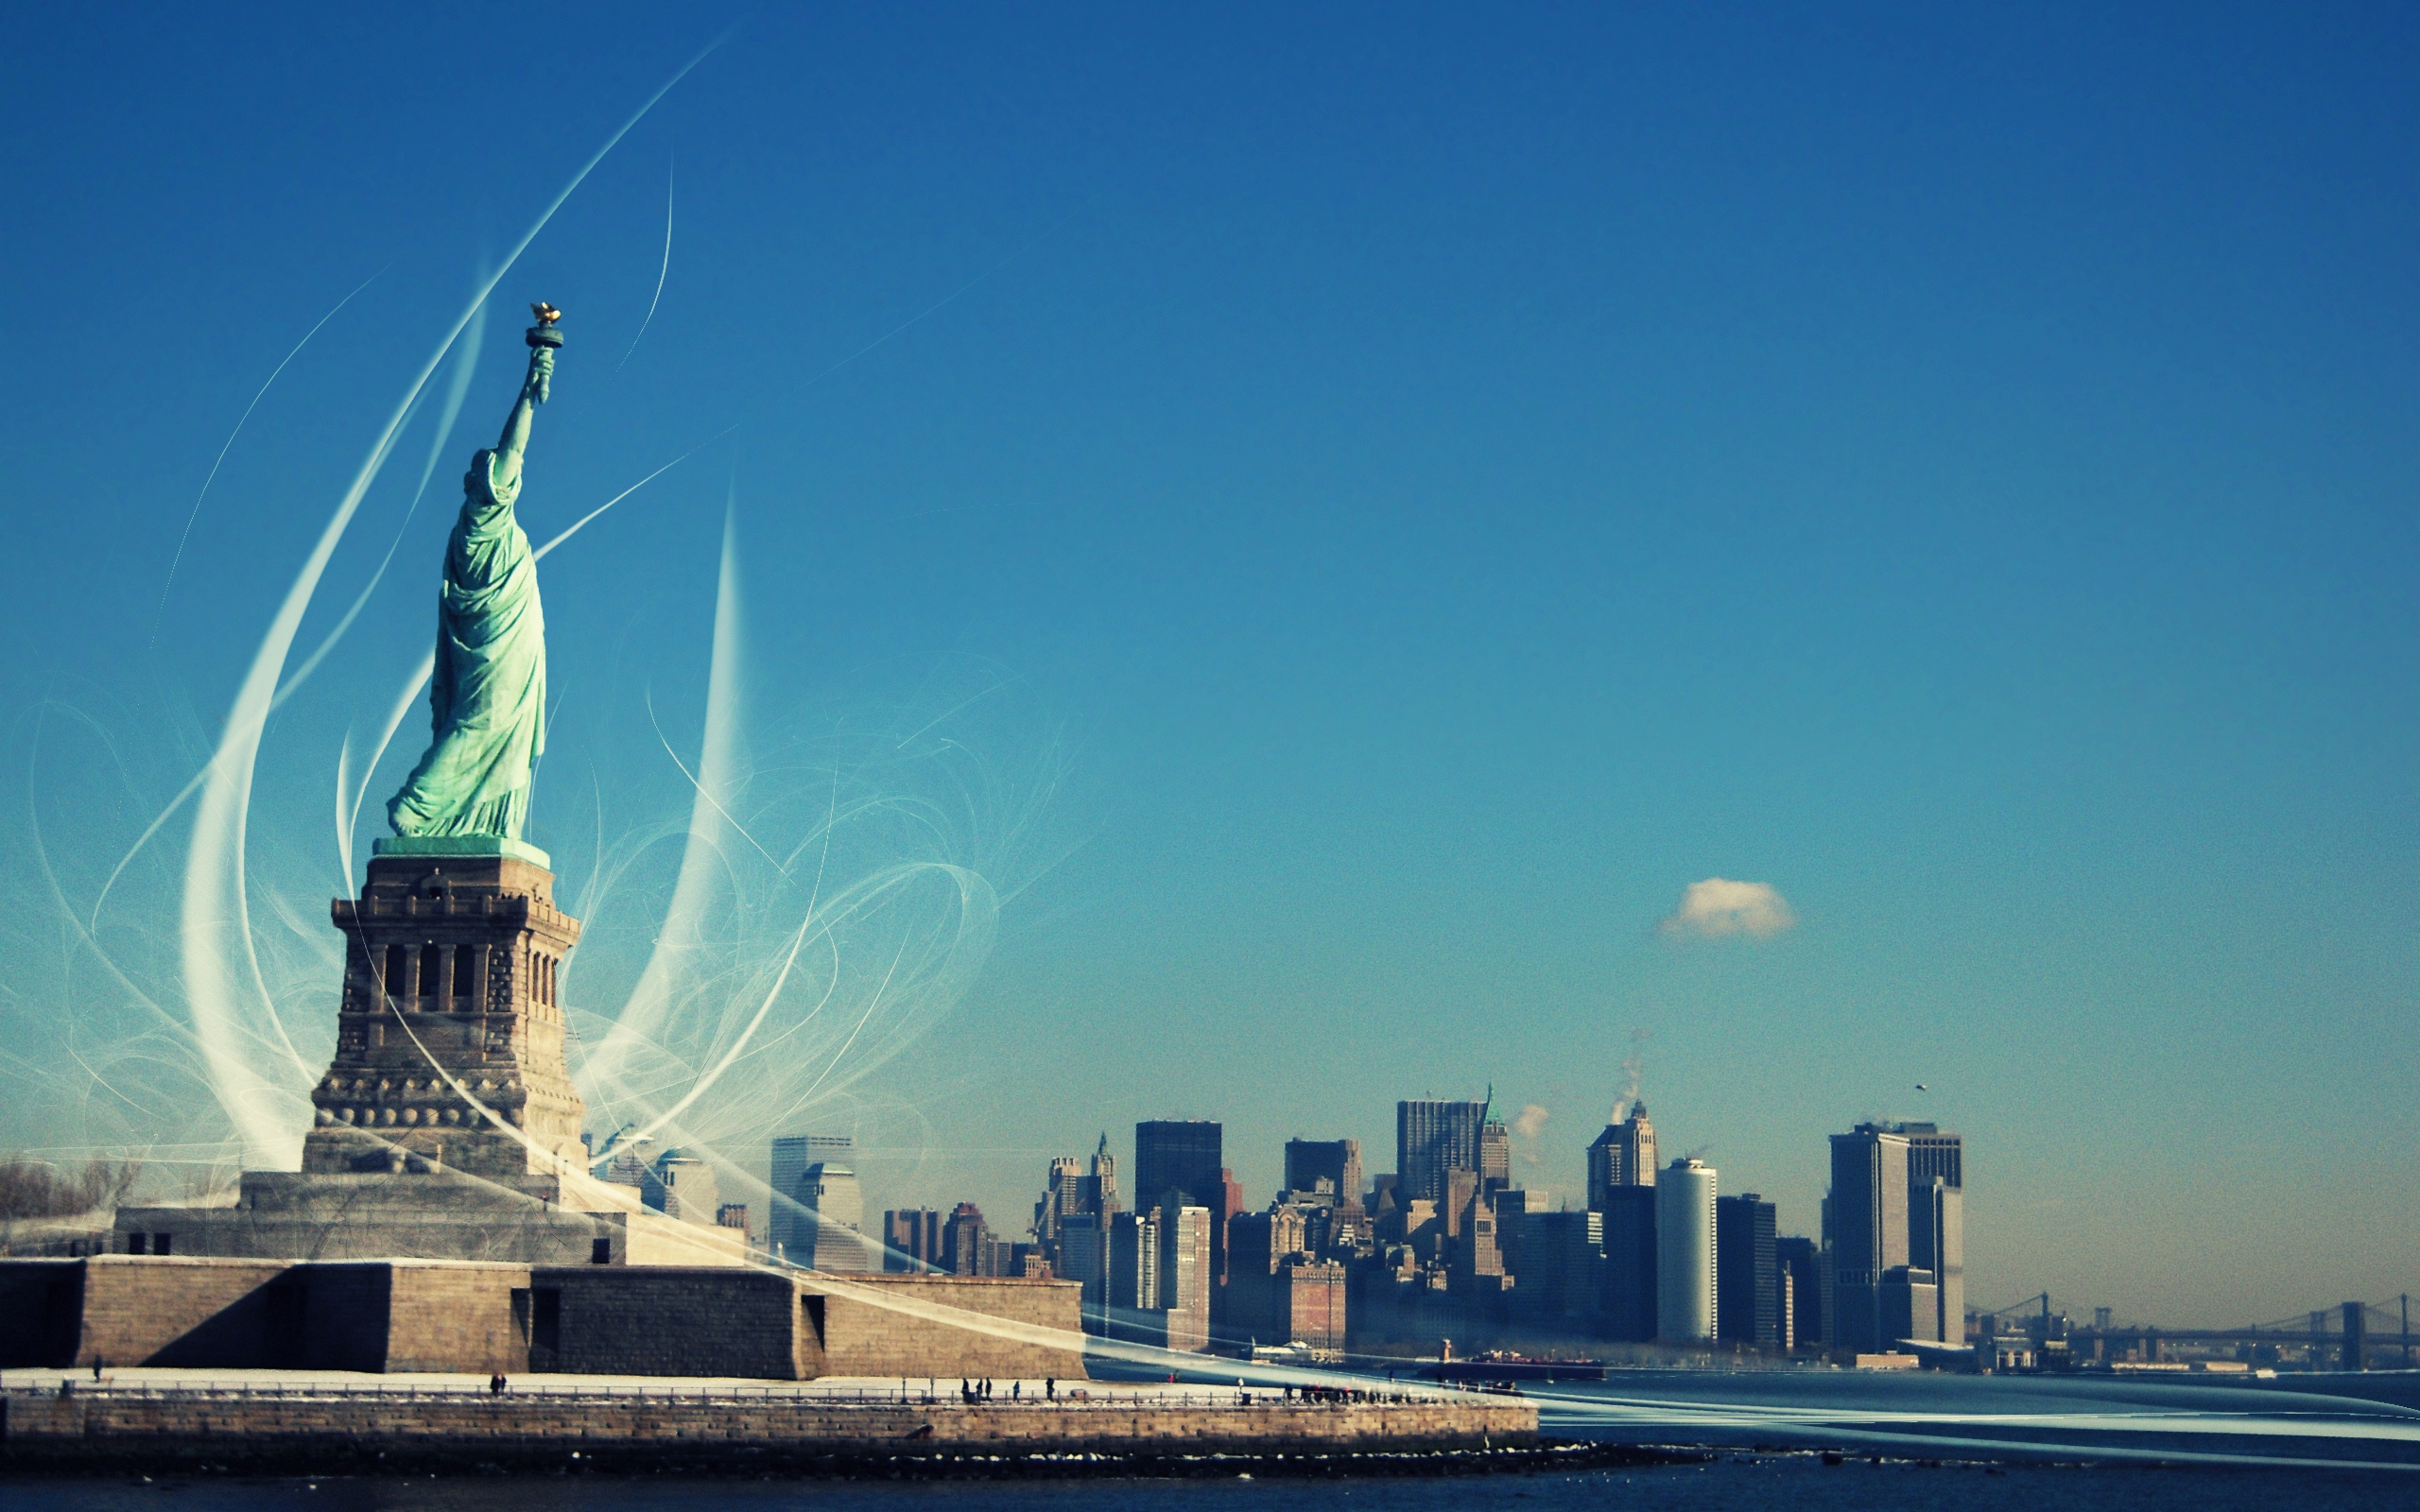 Amazing Statue of Liberty Wallpaper